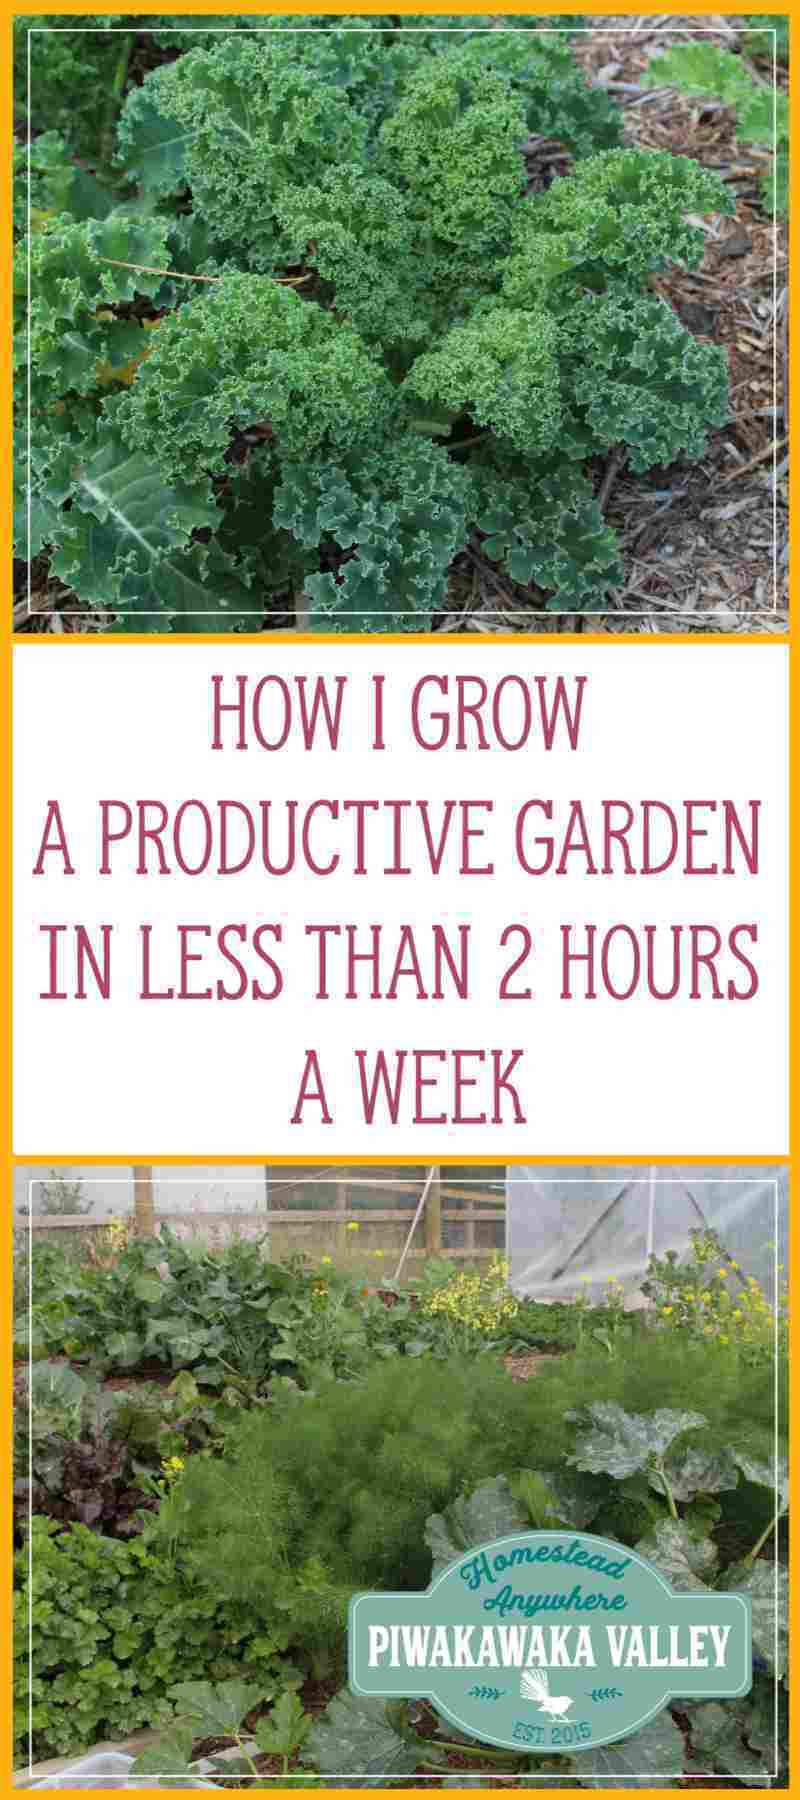 I successfully grow a very productive garden and feed our family of 5 year round from it in less that 2 hours per week. Let me share my secrets with you. #gardening #beginner #course